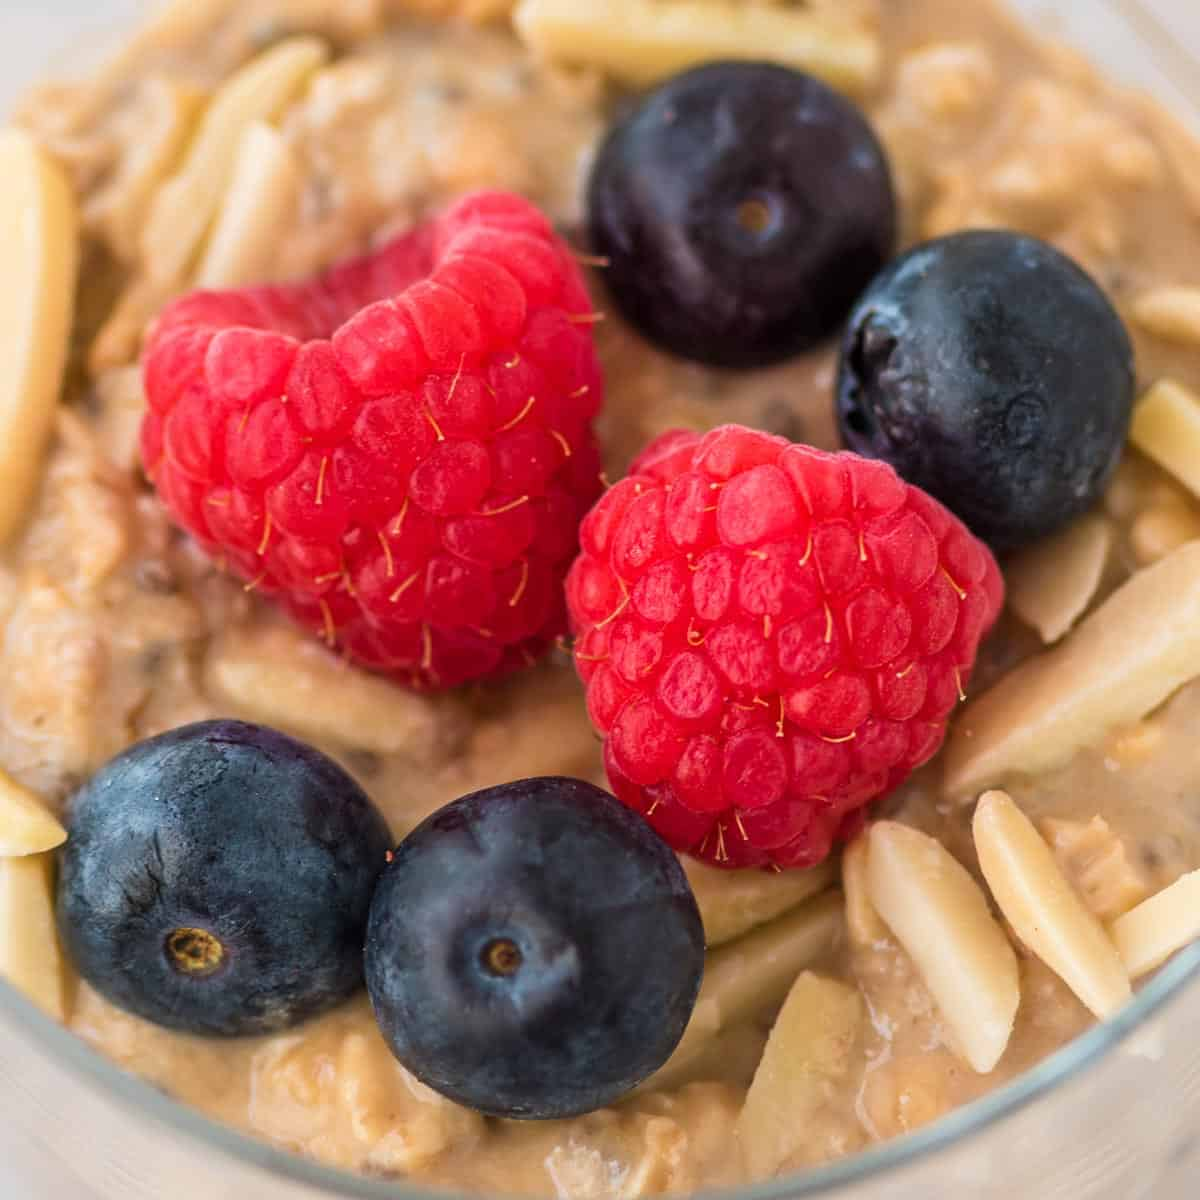 overnight oats topped with raspberries and blueberries